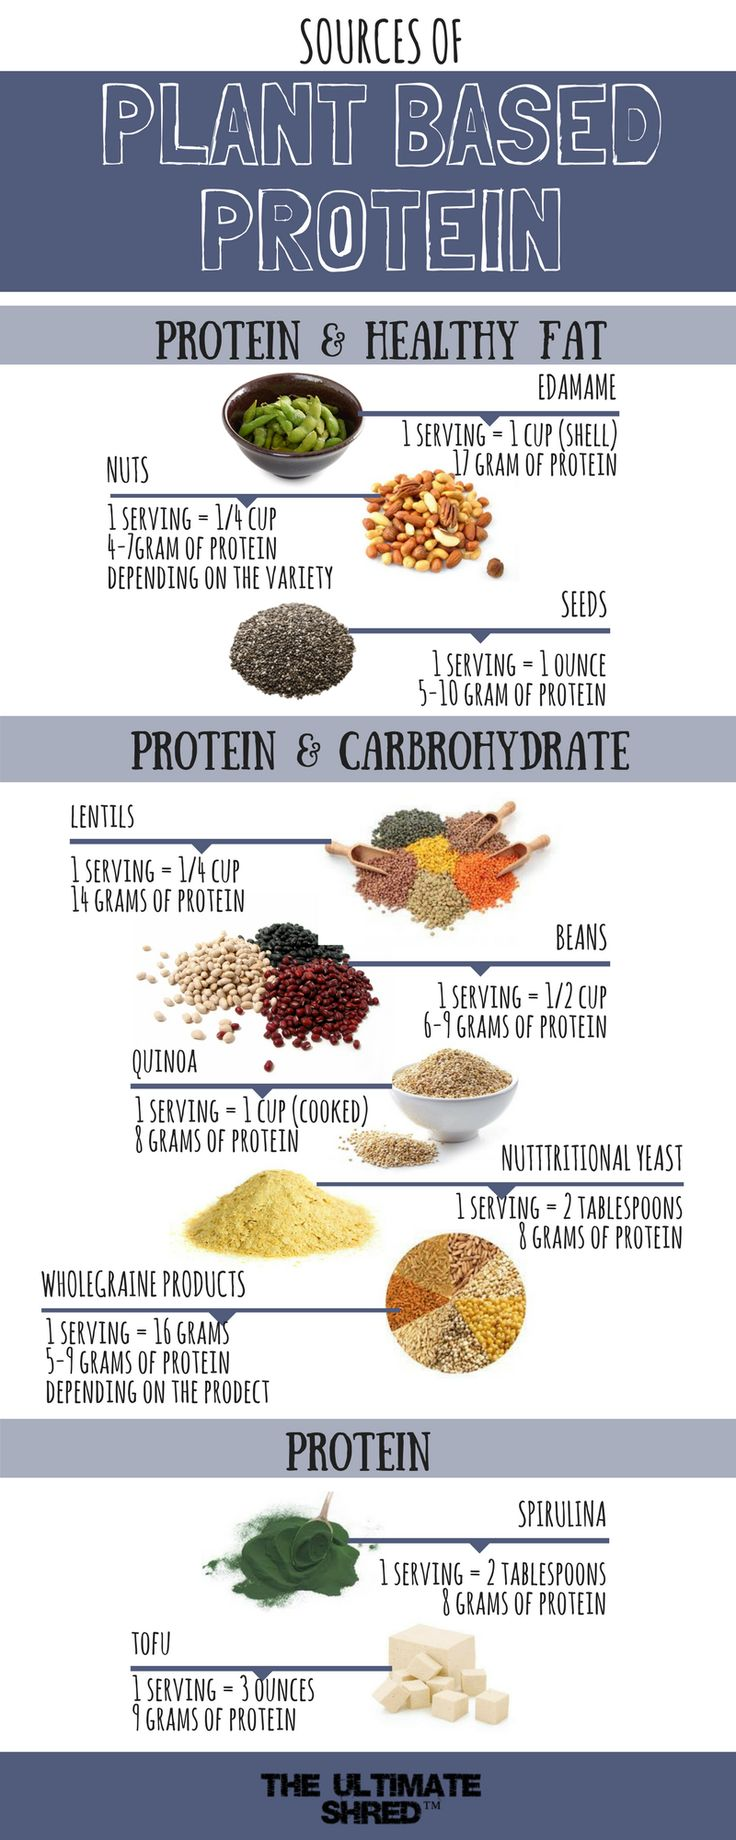 If you're a vegan or vegetarian looking to bump your protein intake, or just curious how to eat sufficient levels of protein on a mostly meat-free, vegan diet, let me help separate the fact from myth and share with you some of the best plant-based protein foods on the planet.